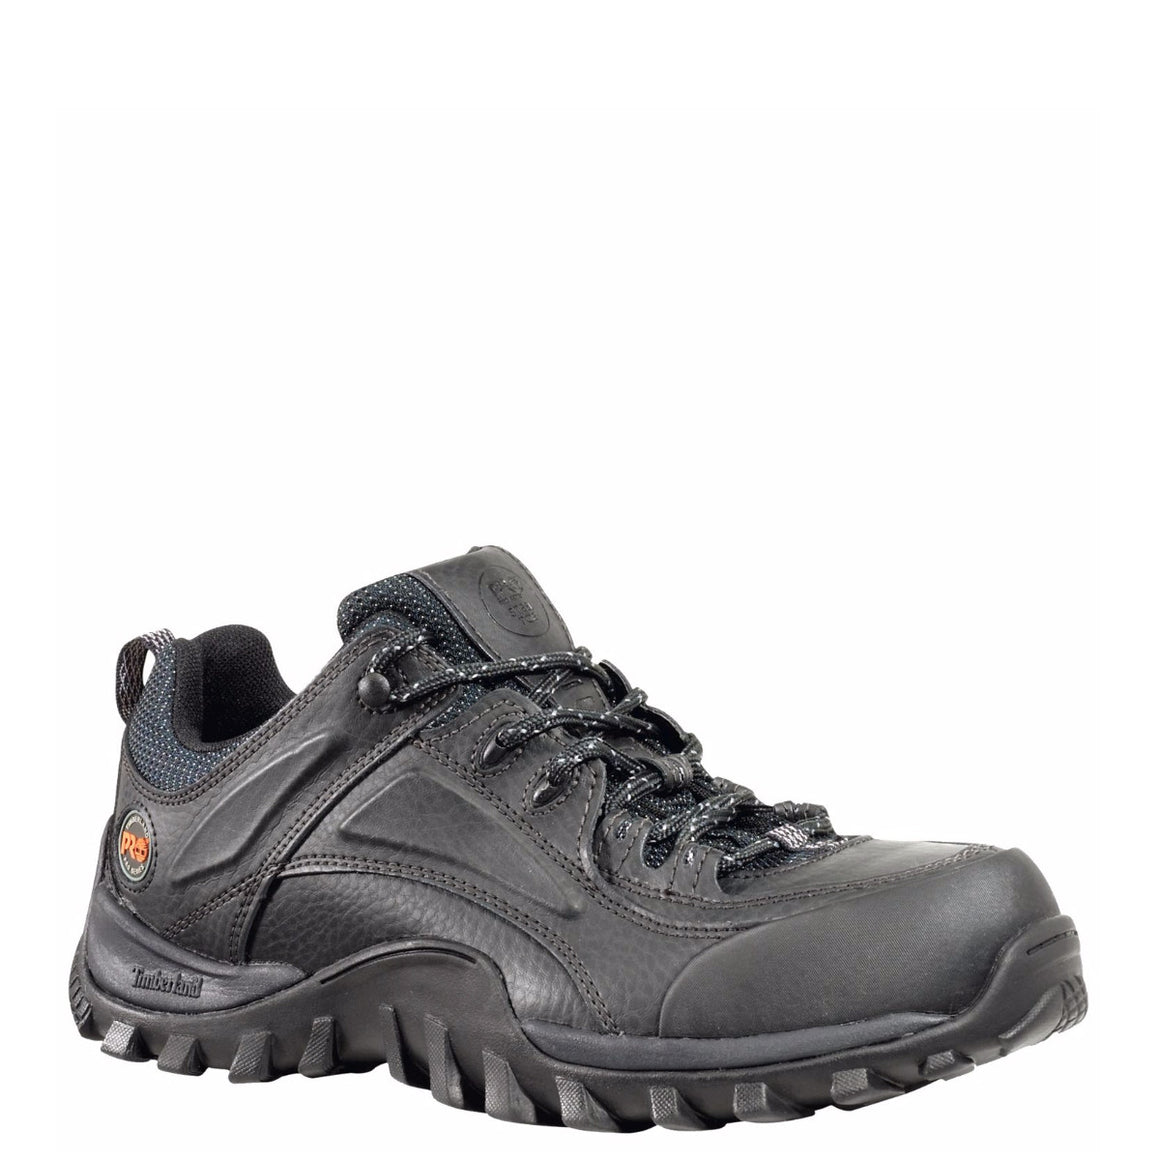 Timberland Pro Men's Mudsill Steel Toe Work Shoes - Black 40008